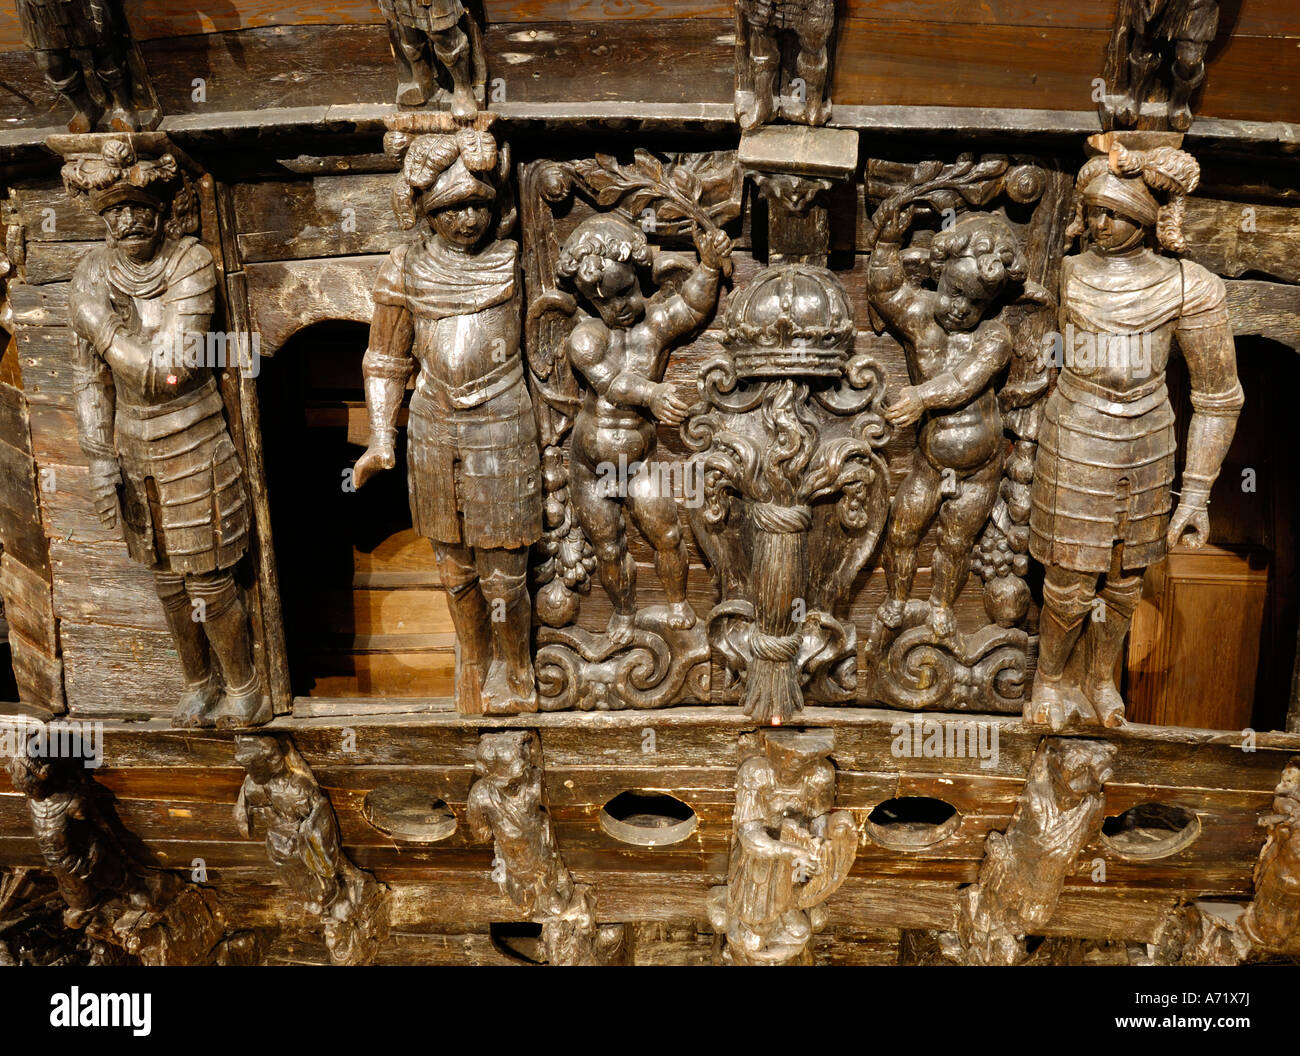 Wooden carvings at the stern of the 17th century battleship Vasa at the Vasa museum in Stockholm, Sweden Stock Photo